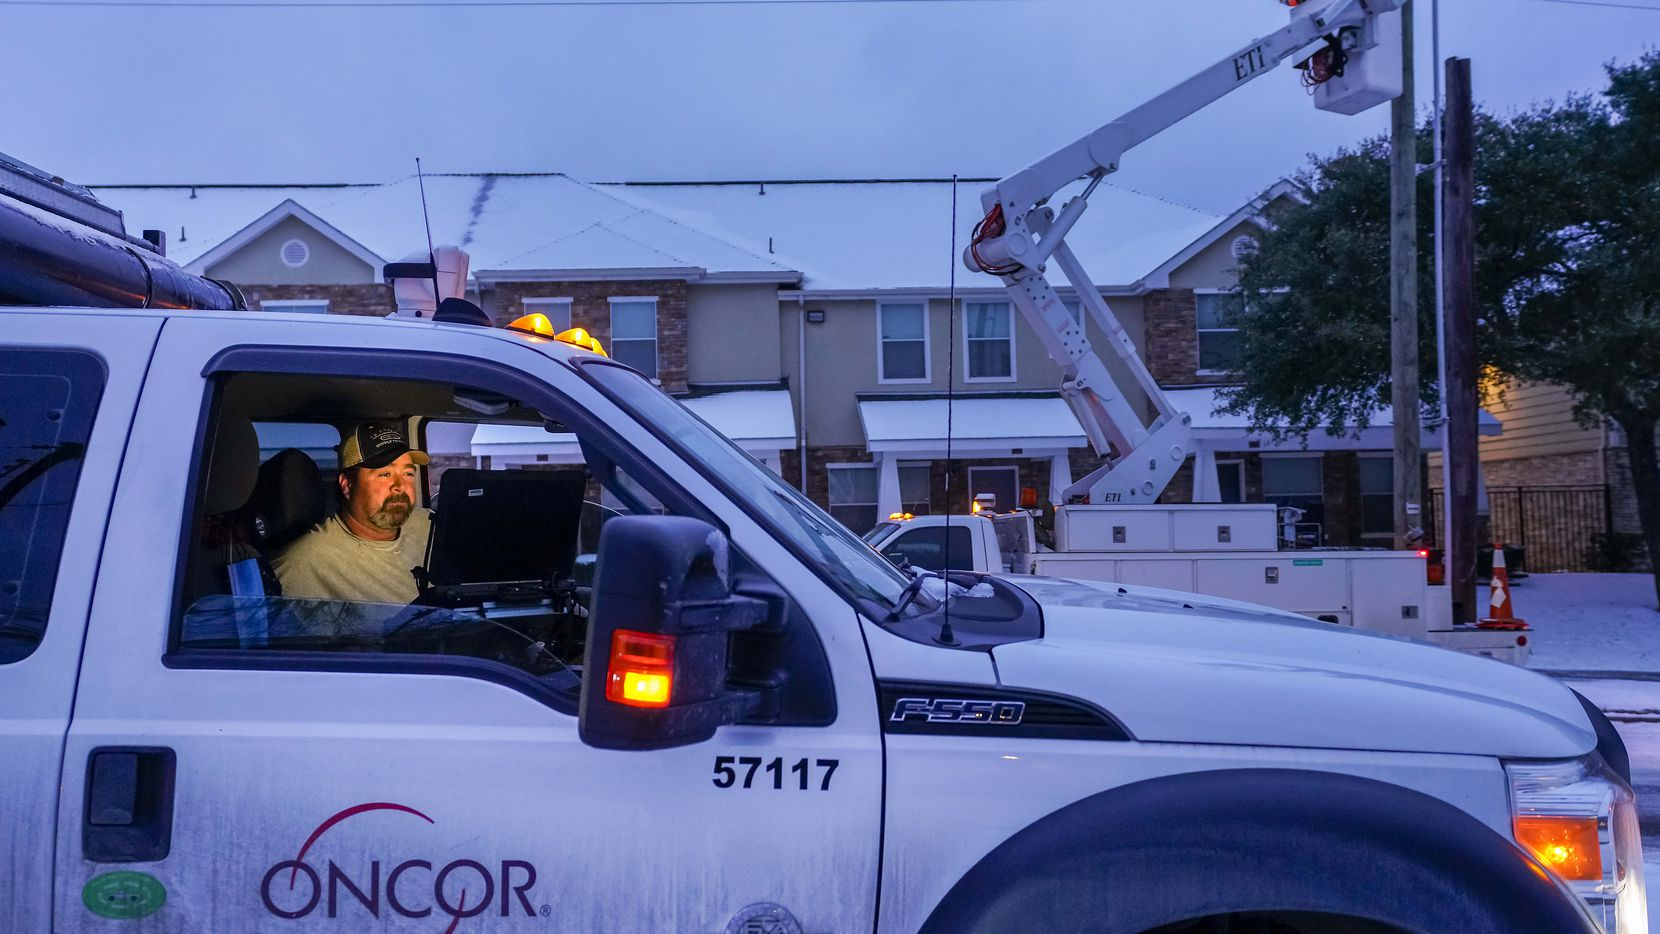 An Oncor crew works on along Elsie Faye Heggins Street as power outages continue across the state after a second winter storm brought more snow and continued freezing temperatures to North Texas on Wednesday, Feb. 17, 2021, in Dallas.